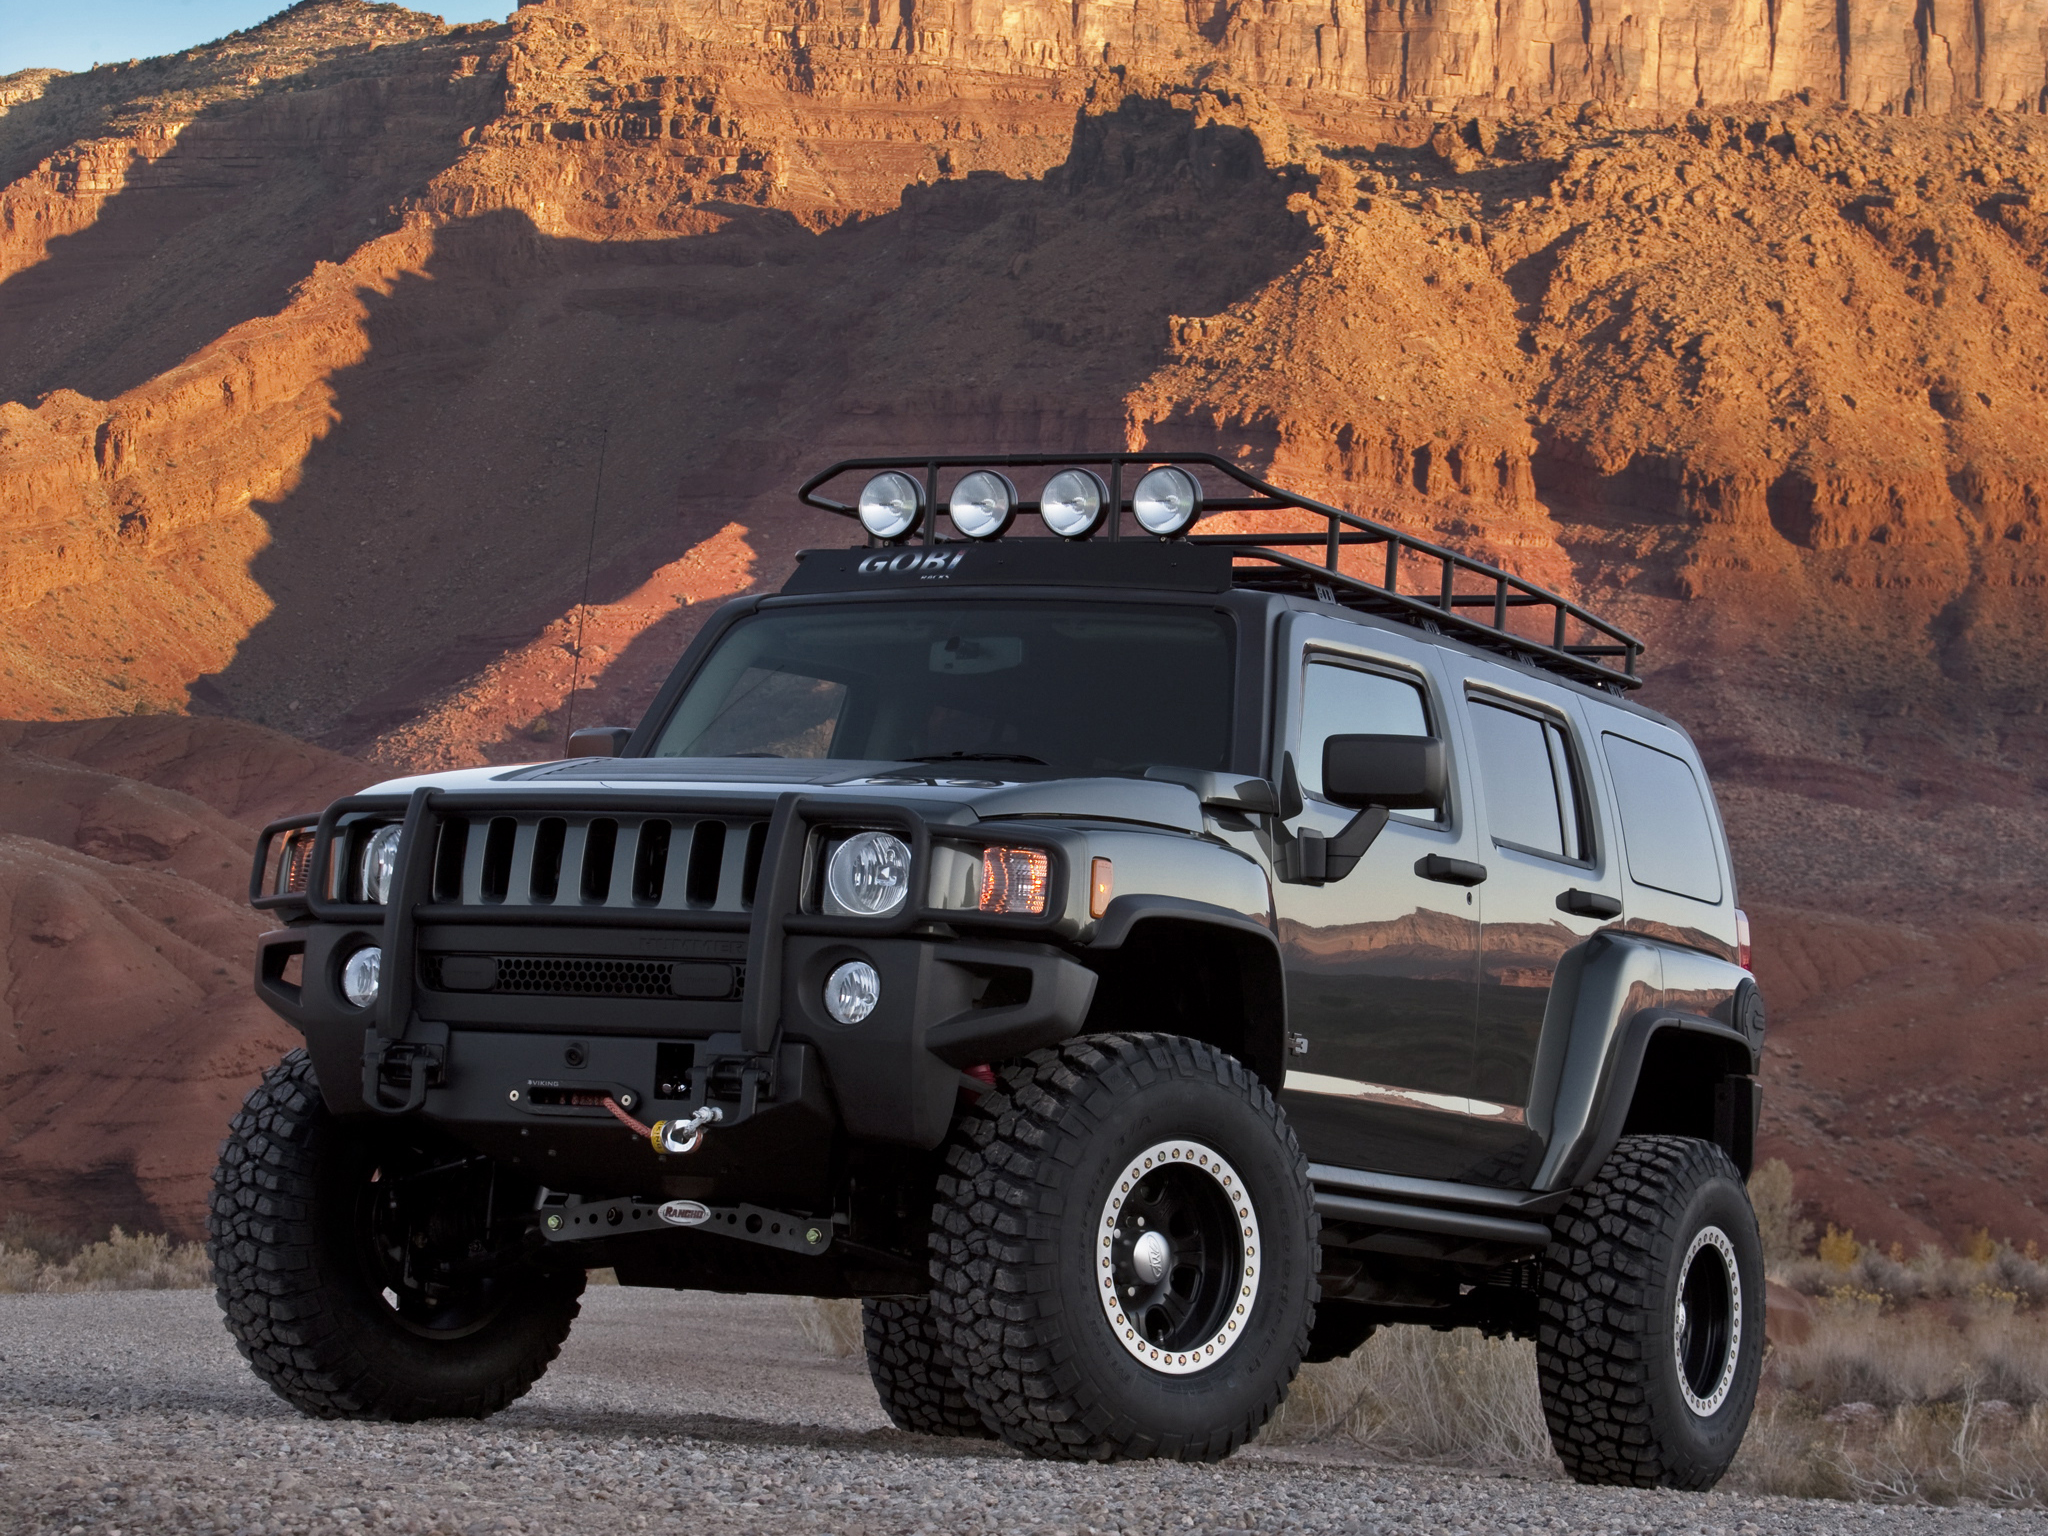 2009 Hummer H3 Moab Concept 4x4 suv h 3 wallpaper